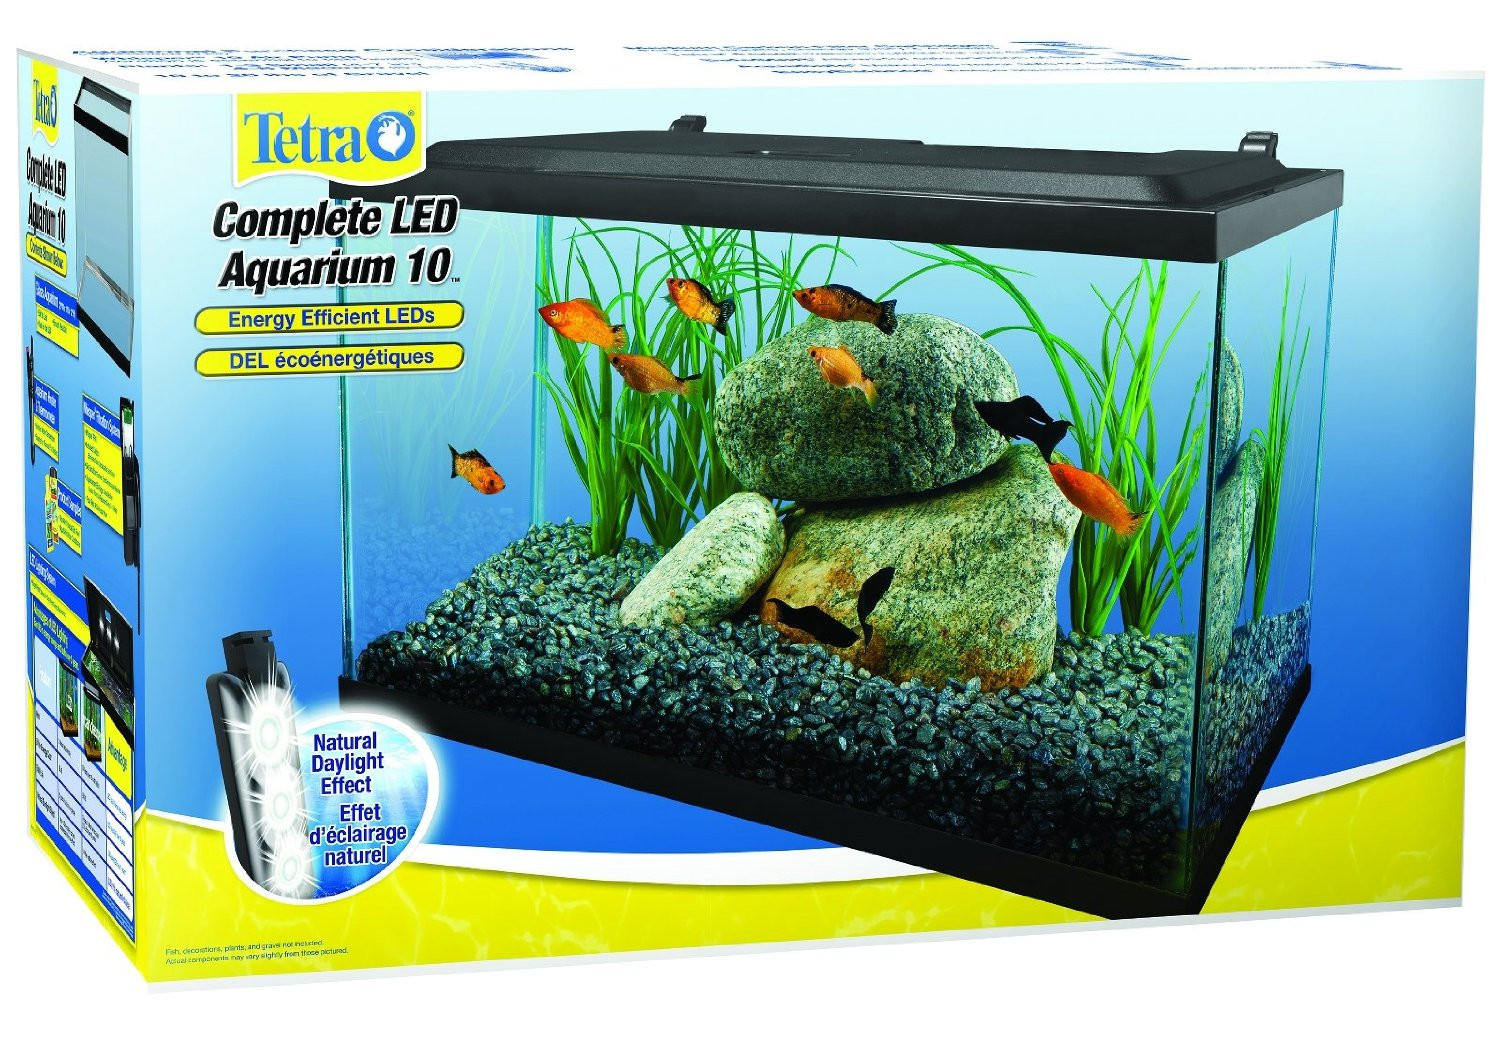 Tetra deluxe led aquarium fish tank kit from gotpetsupplies for 20 gallon fish tank kit